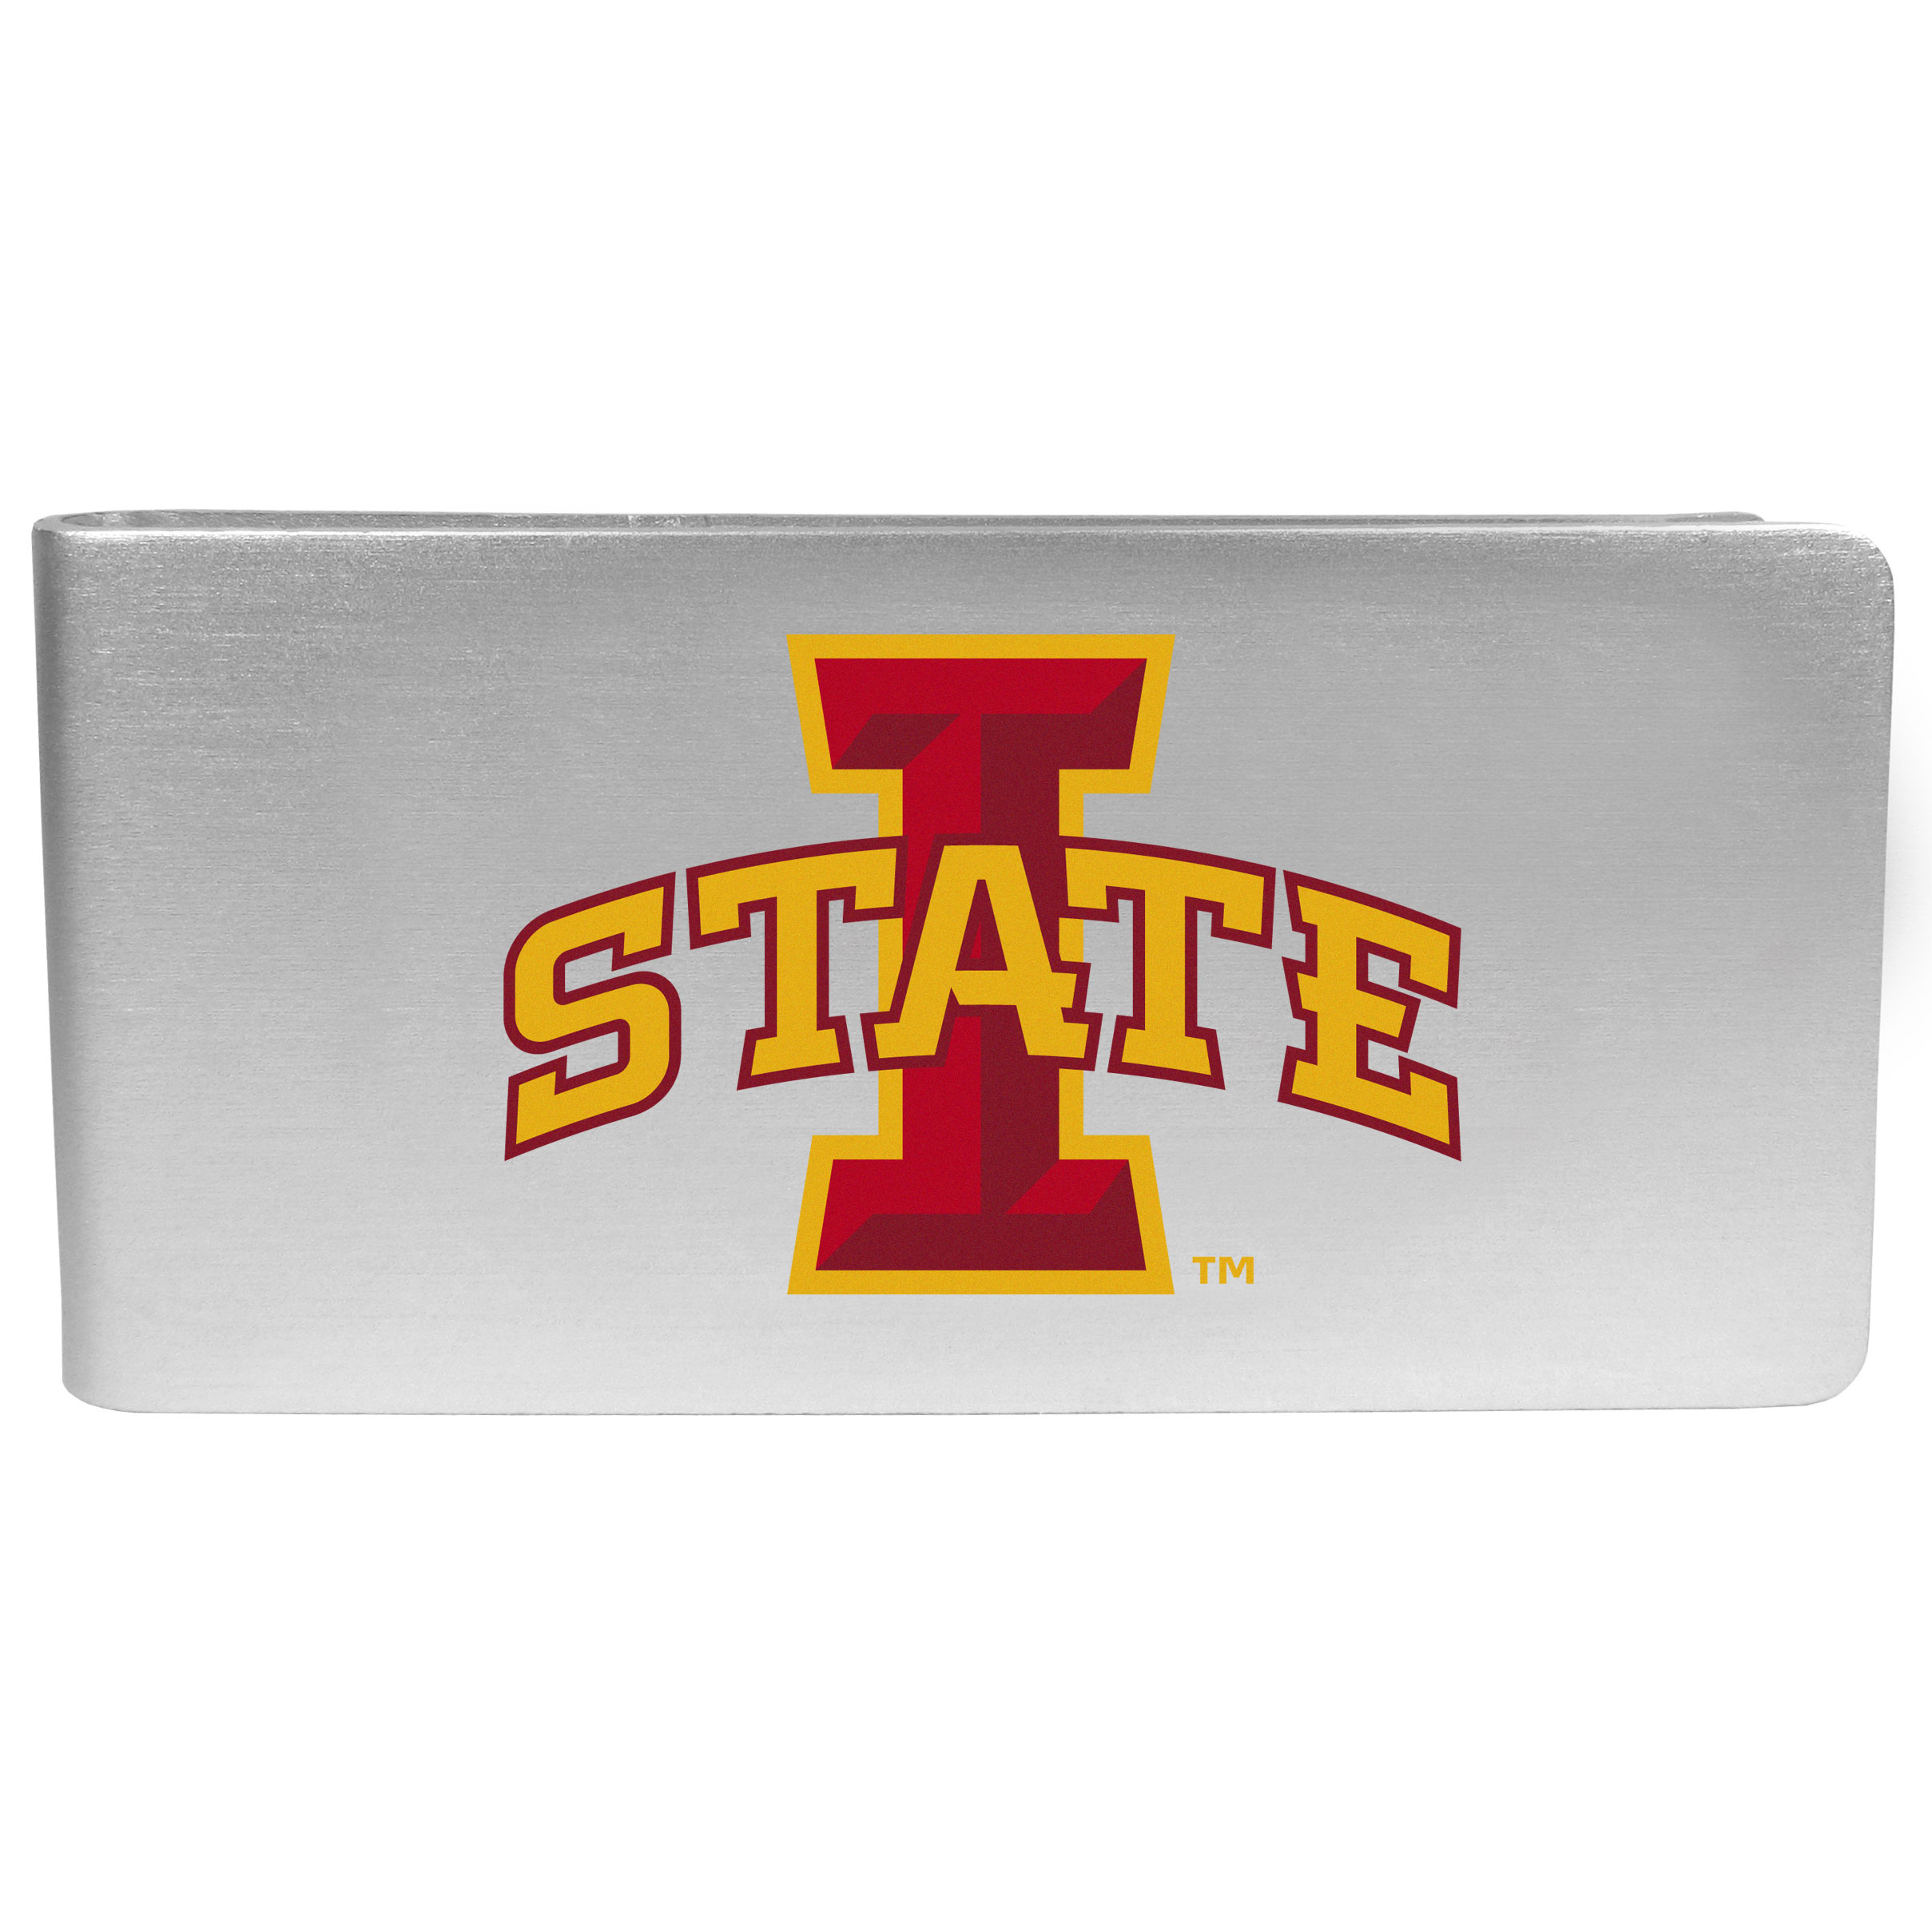 Iowa St. Cyclones Logo Money Clip - Our brushed metal money clip has classic style and functionality. The attractive clip features the Iowa St. Cyclones logo expertly printed on front.